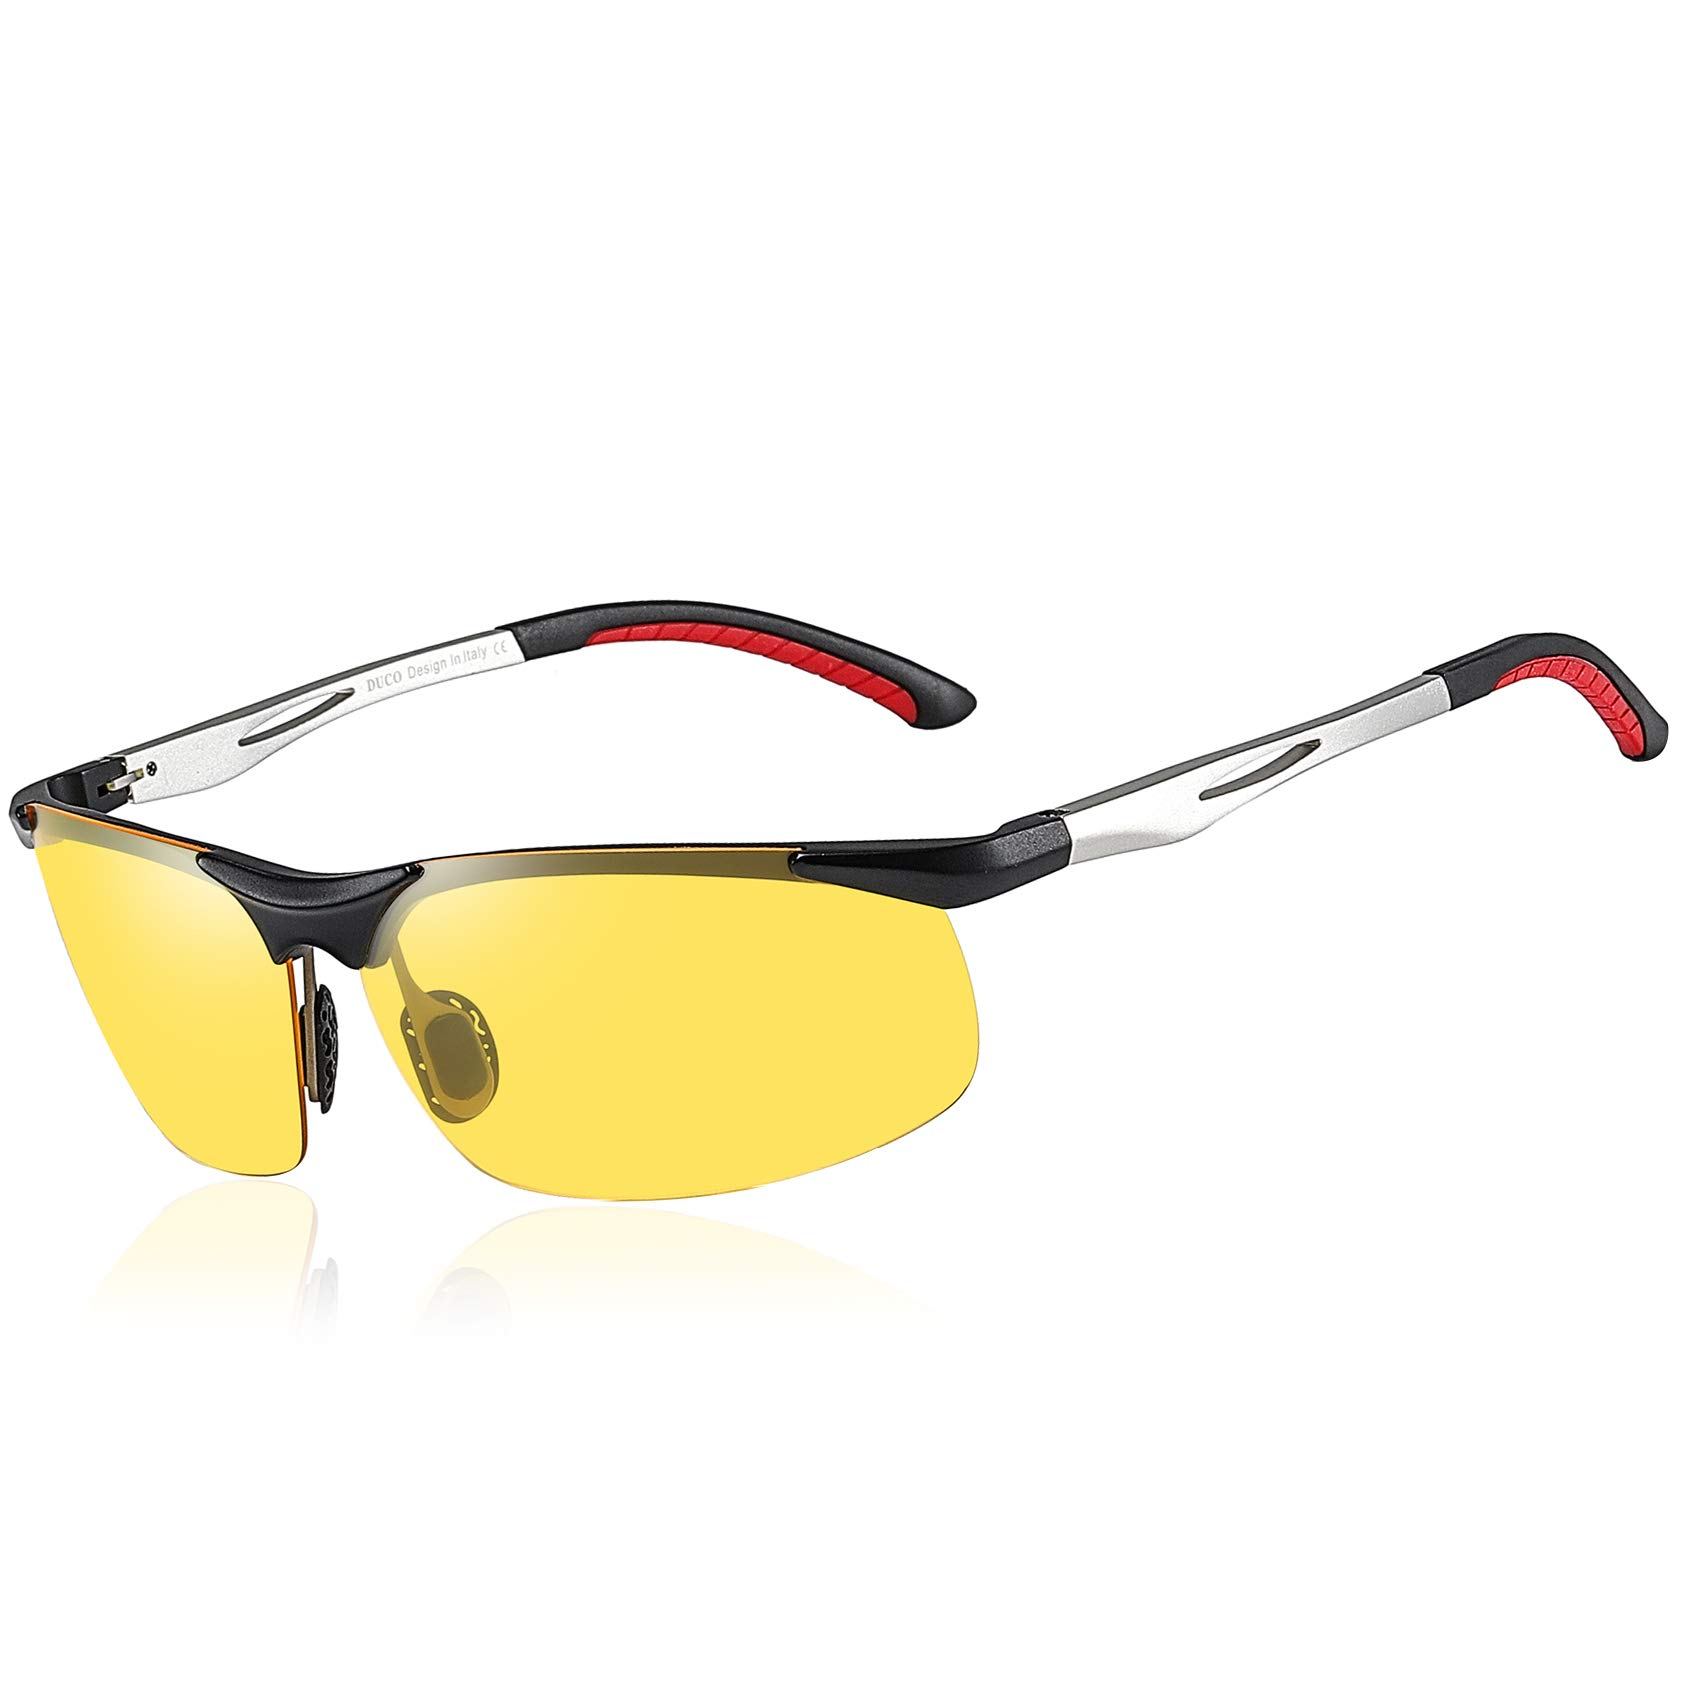 Duco Yellow Night-vision Glasses Anti-glare Driving HD Night Driving Glasses 2181 by DUCO